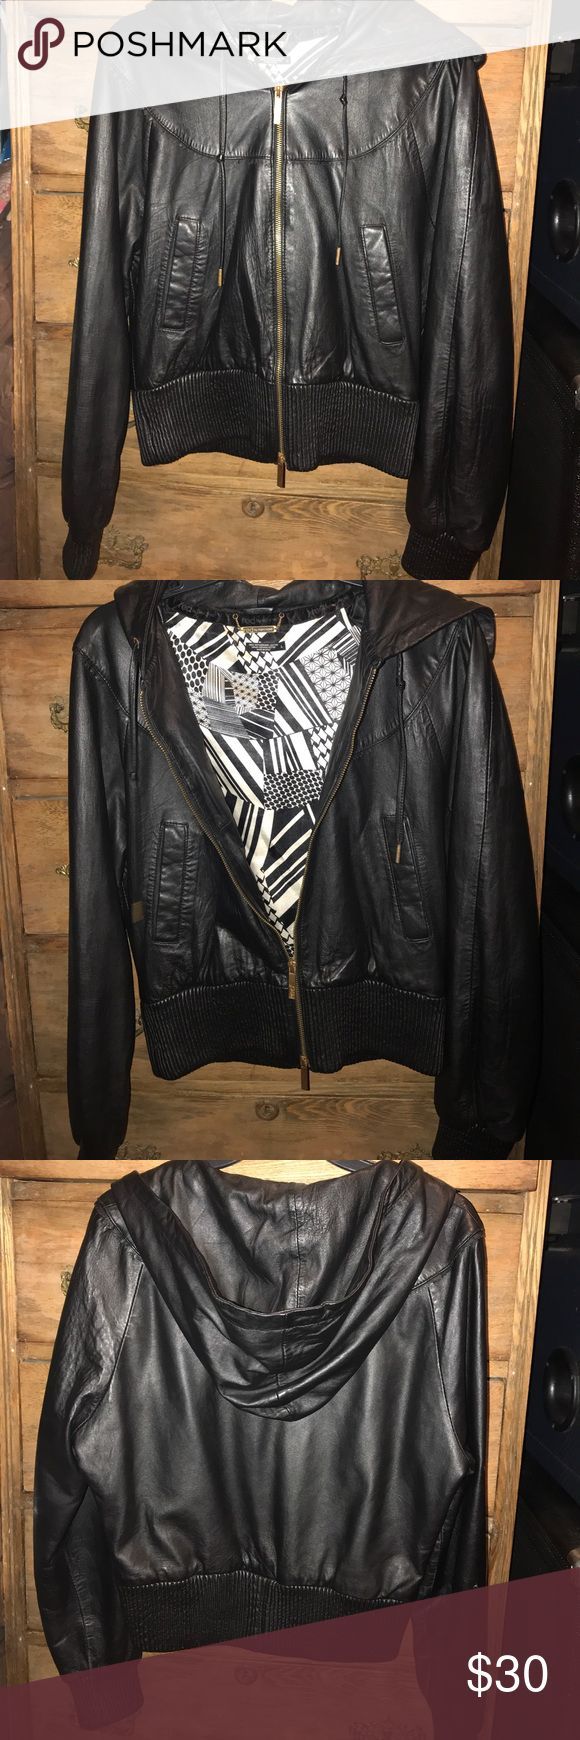 Leather bomber jacket Black leather bomber jacket. Has two pockets and a black leather hood (not detachable). Tighter fit around waist, looser fit on arms, back, and front. Bronze zipper and metal detail. Lining on the inside, perfect for cold days! Ecko Unlimited Jackets & Coats Puffers